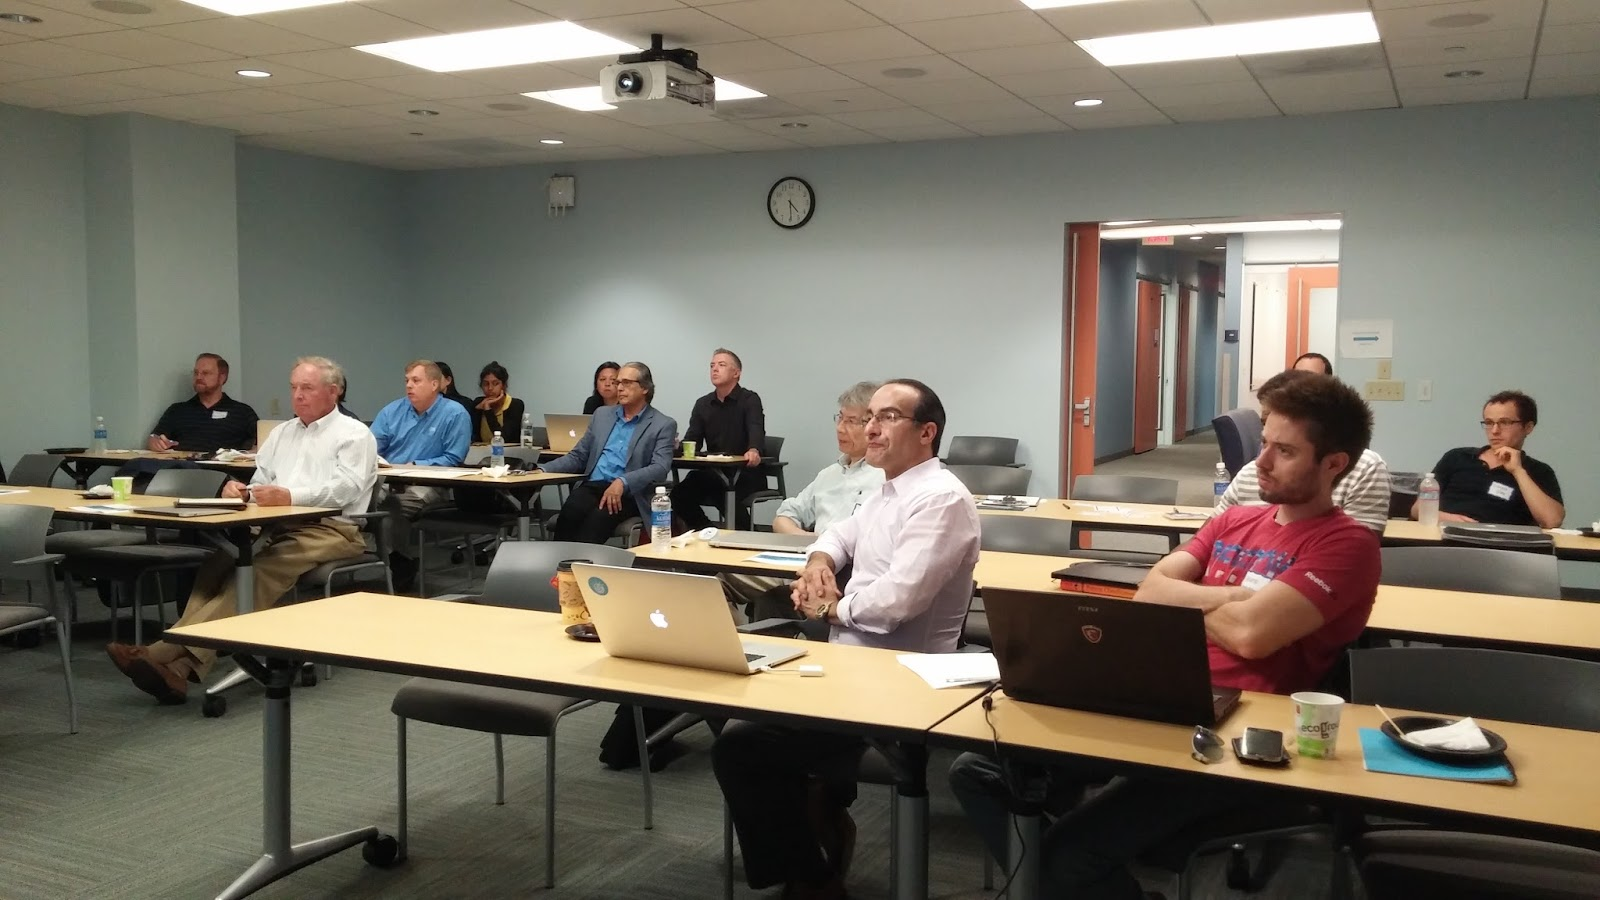 hight resolution of representatives from ibm provided a free student and faculty workshop with the von liebig entrepreneurism center at the jacobs school of engineering on